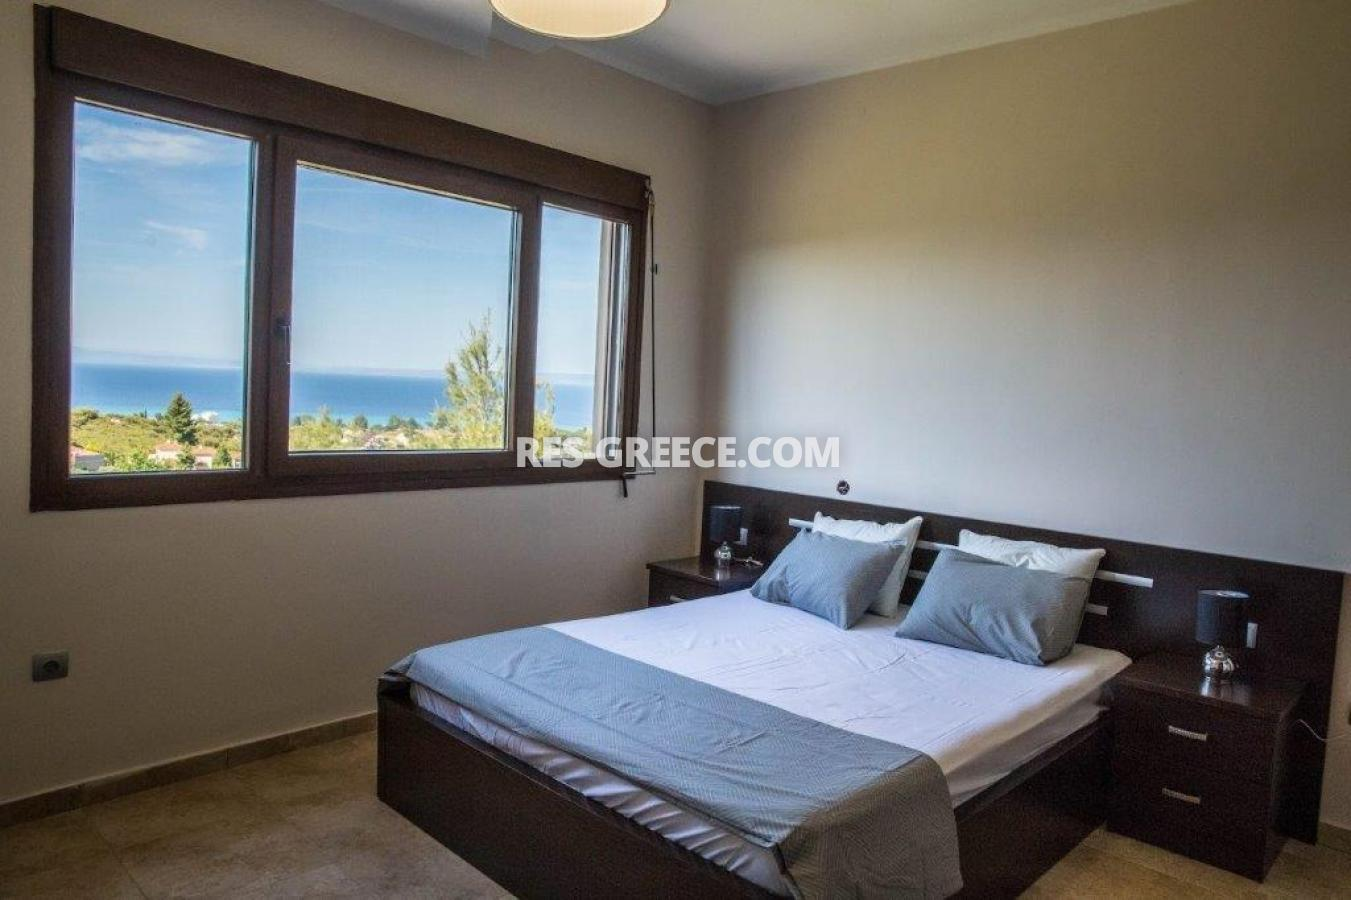 Delfini, Halkidiki-Kassandra, Greece - complex of 2 villas with panoramic view for sale - Photo 48